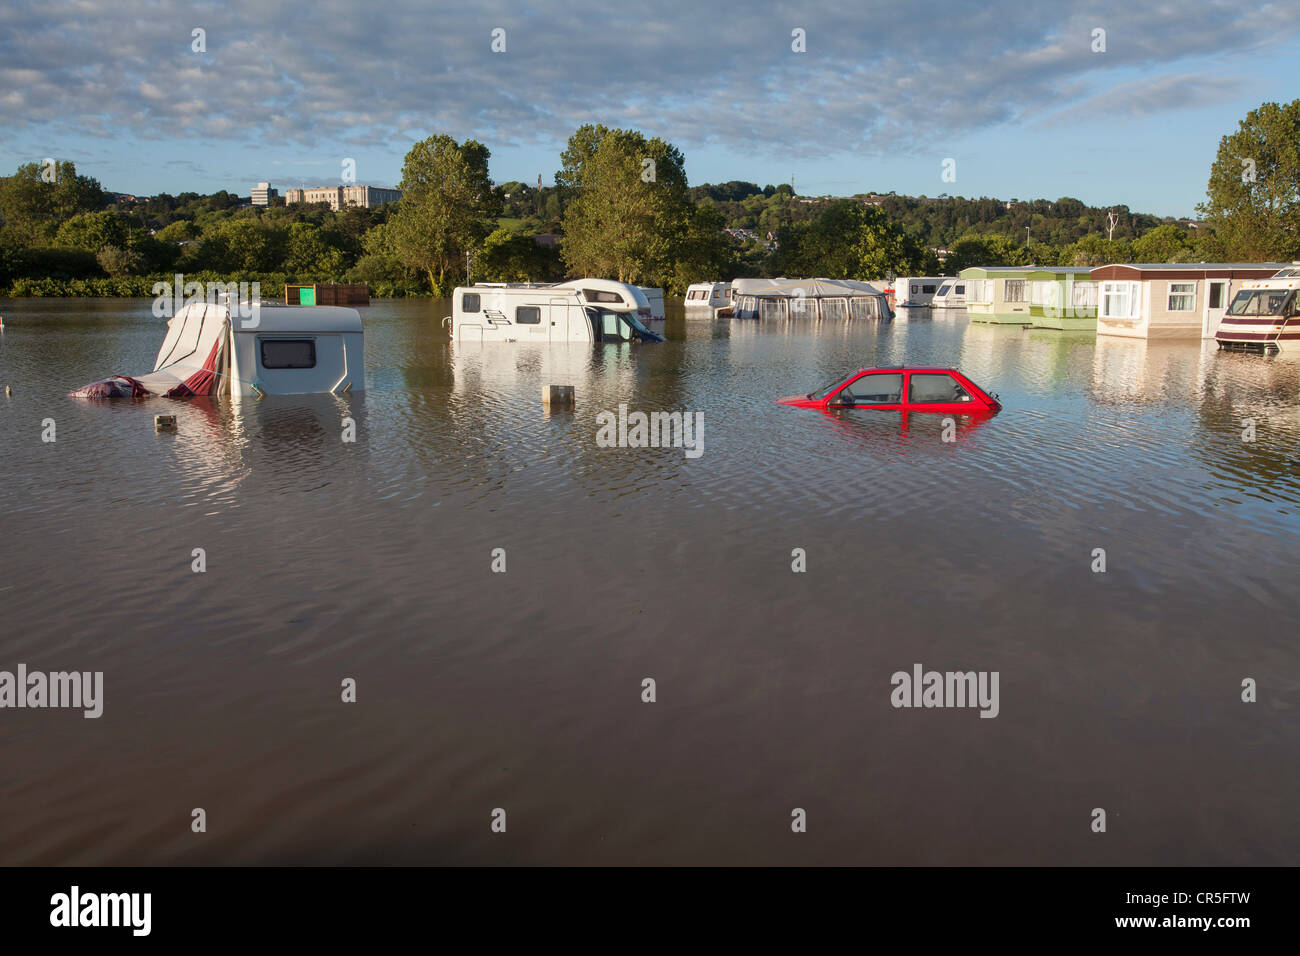 A flooded campsite in Aberystwyth, Wales Stock Photo